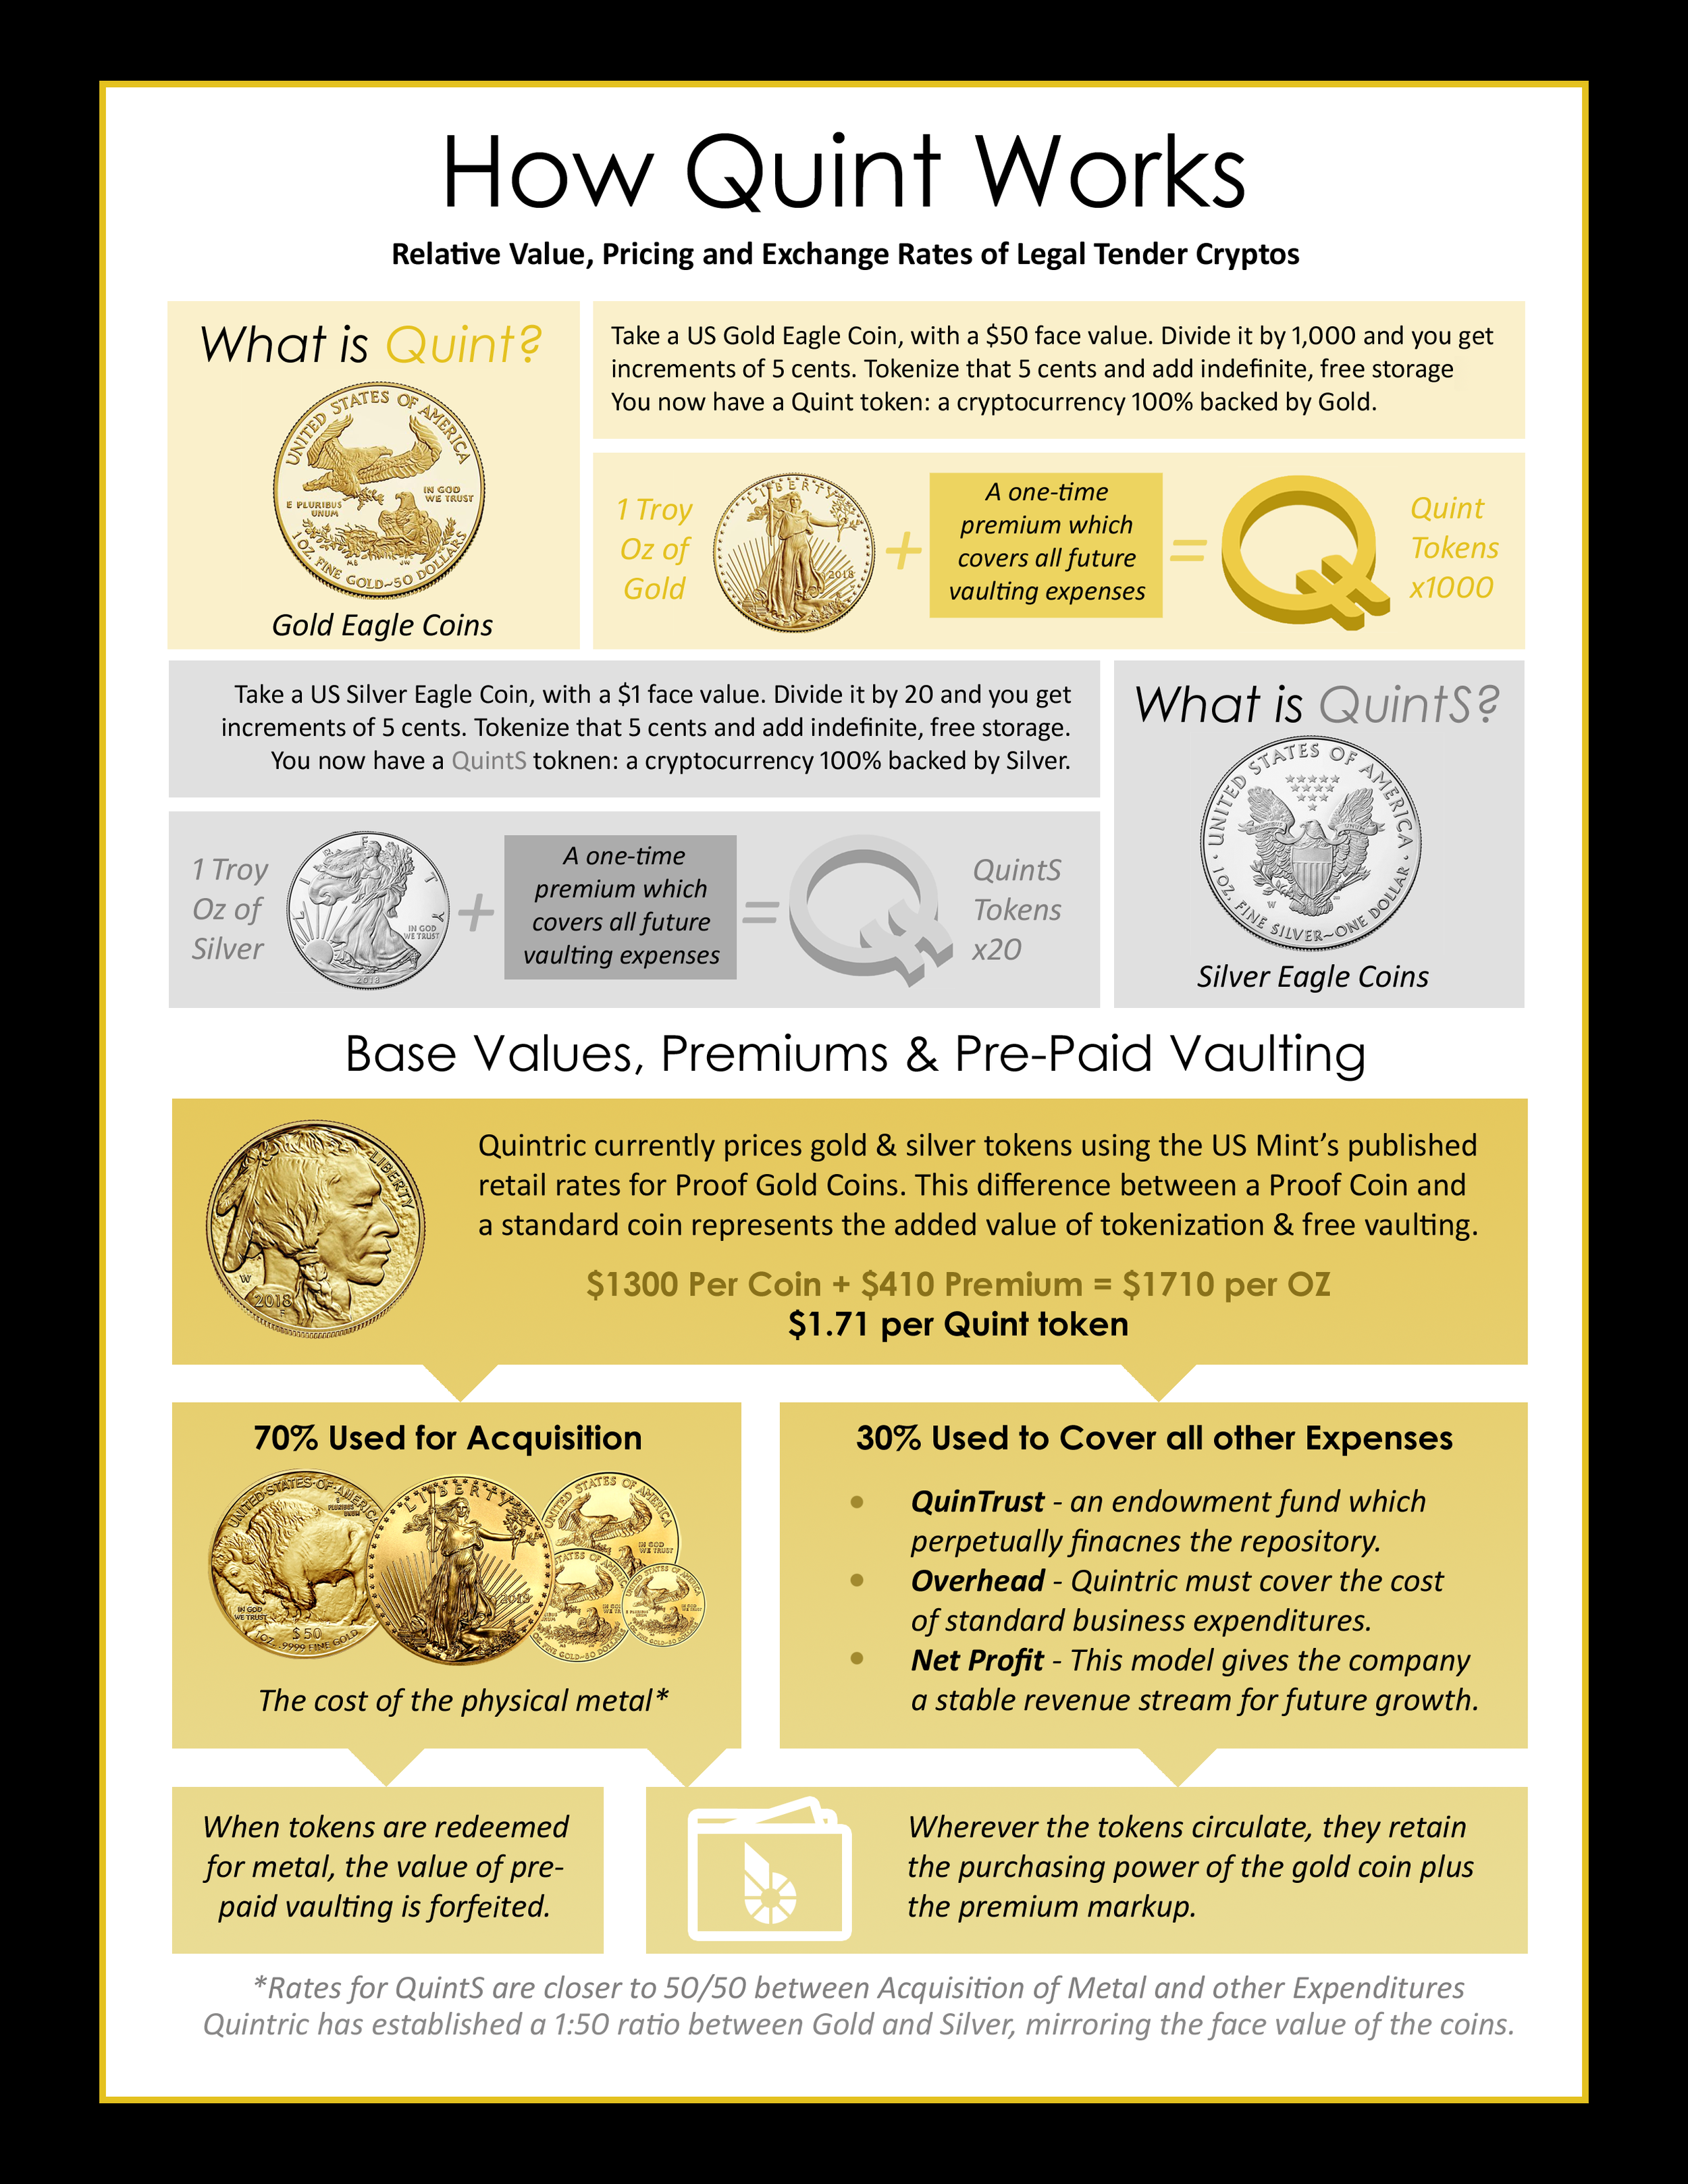 The Quint is the ultimate stablecoin: it is not only pegged to gold, which has a several-thousand-year track record, but the current price model provides added stability beyond the base value of the metal itself.